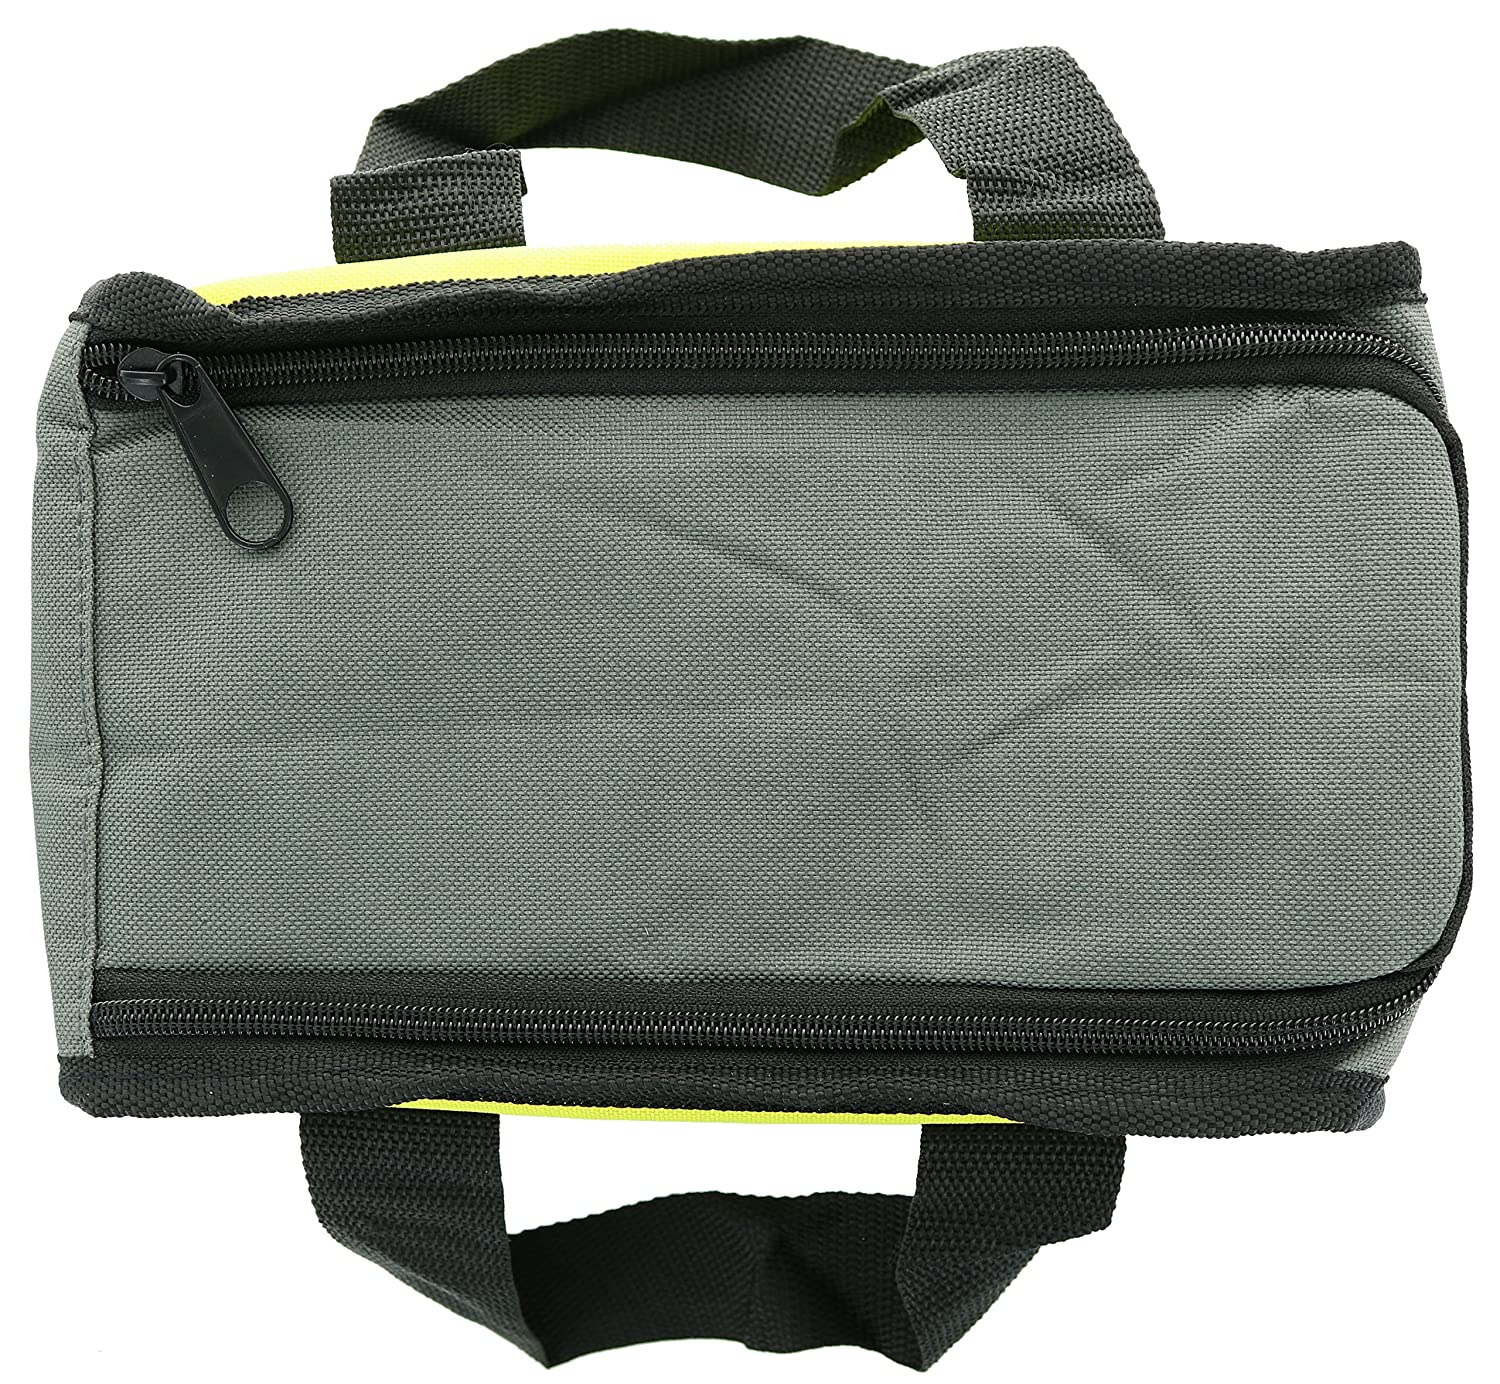 Ryobi Lime Green Genuine Oem Tool Tote Bag 2 Pack Tools Not Torch Messenger Odate Abu Included